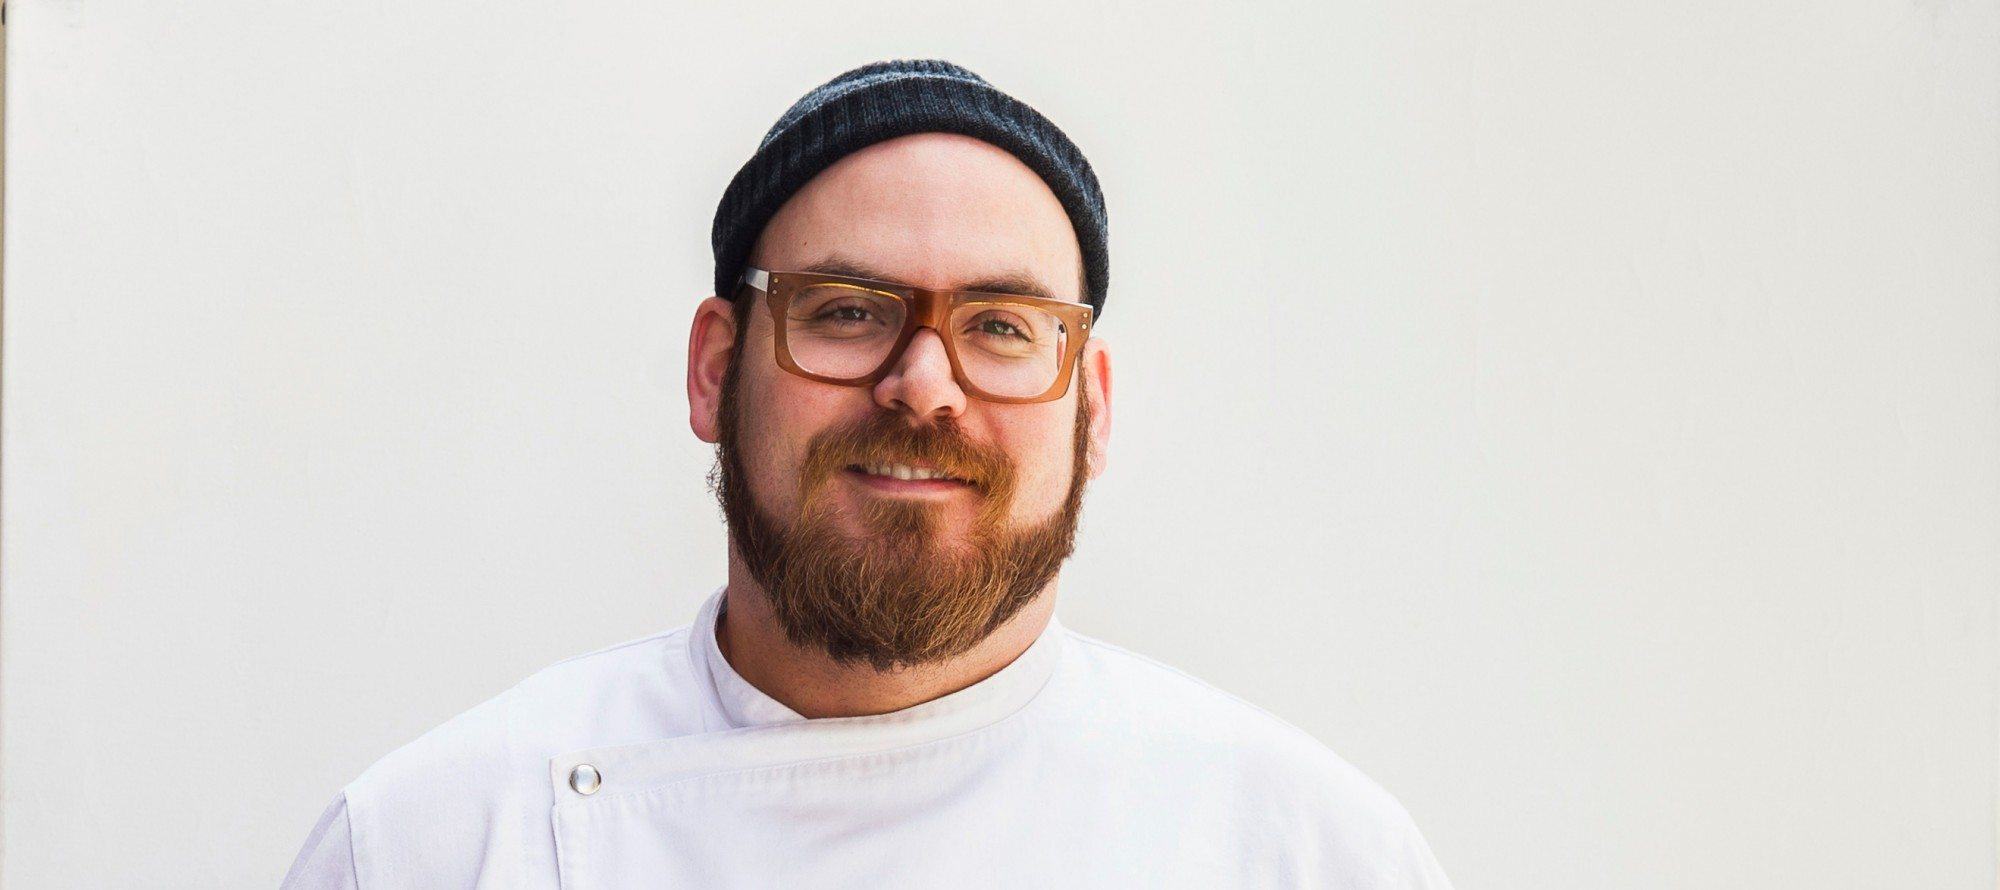 City Bites Insider: Reserve now! Chef Kyrn Stein leaving Social for new adventures